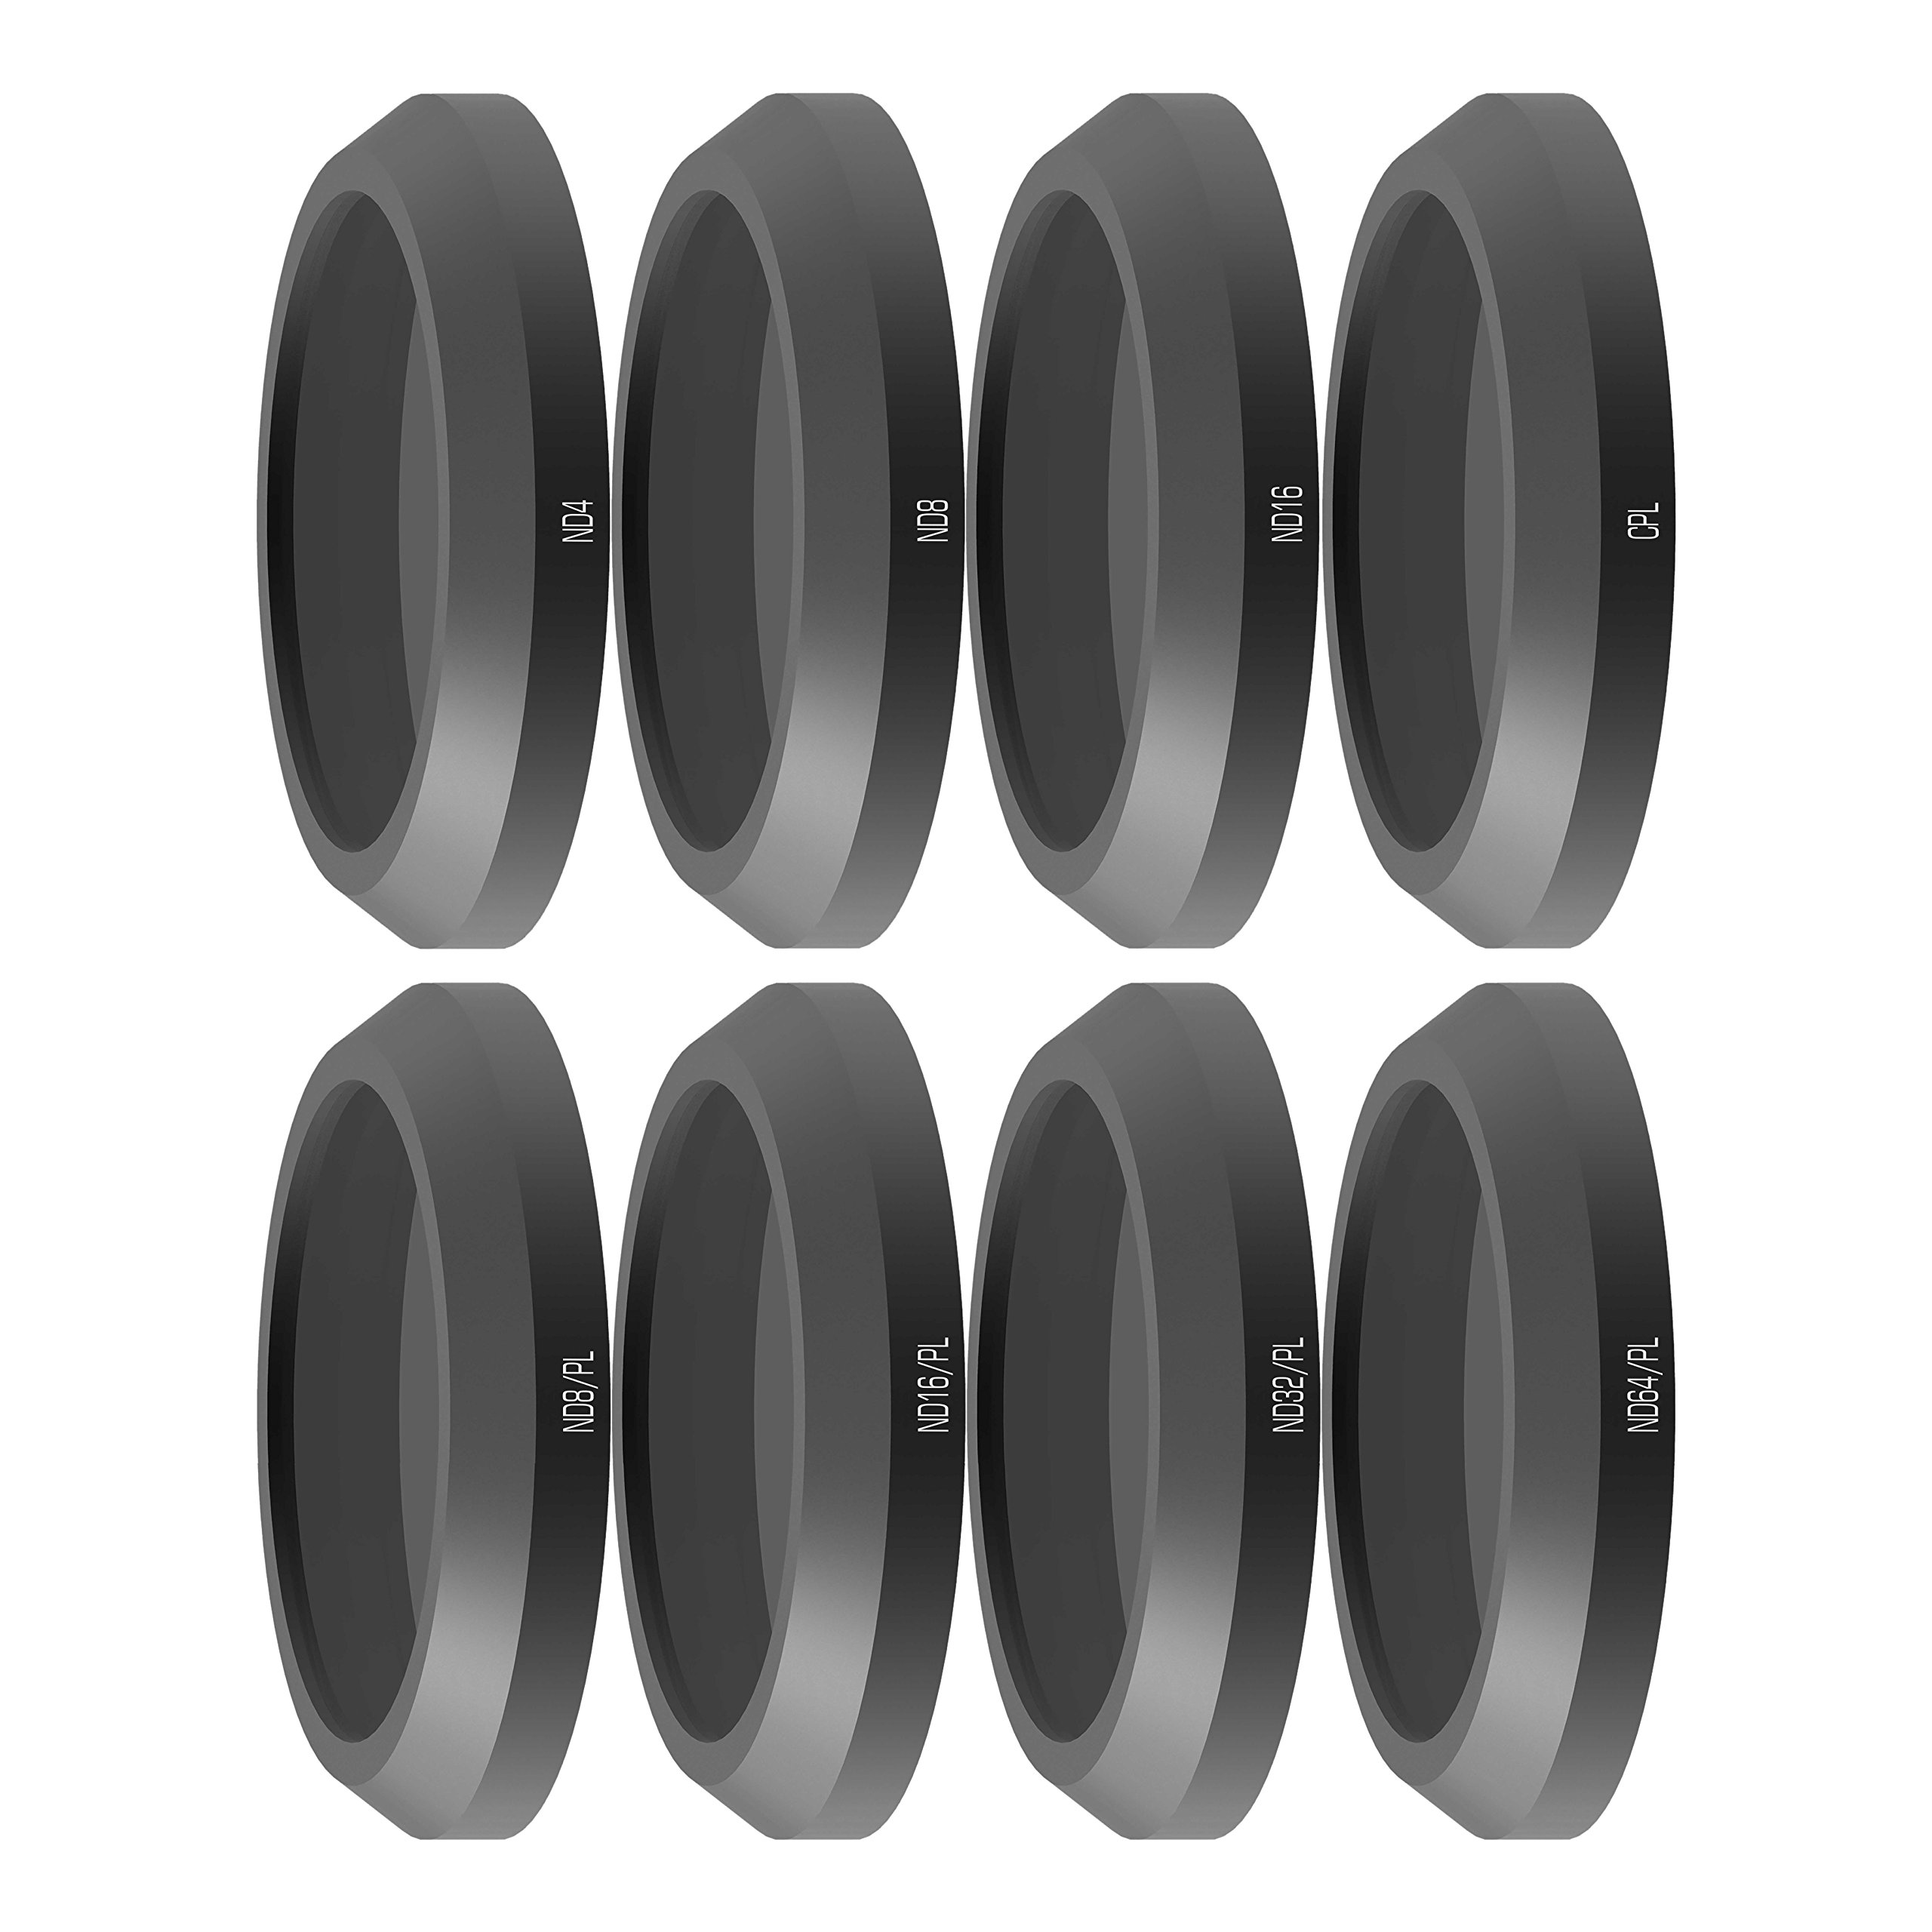 Freewell All Day-Camera Lens Filters Kit 8Pack ND4, ND8, ND16, CPL, ND8/PL, ND16/PL, ND32/PL, ND64/PL Made for Used with Parrot Anafi Drone